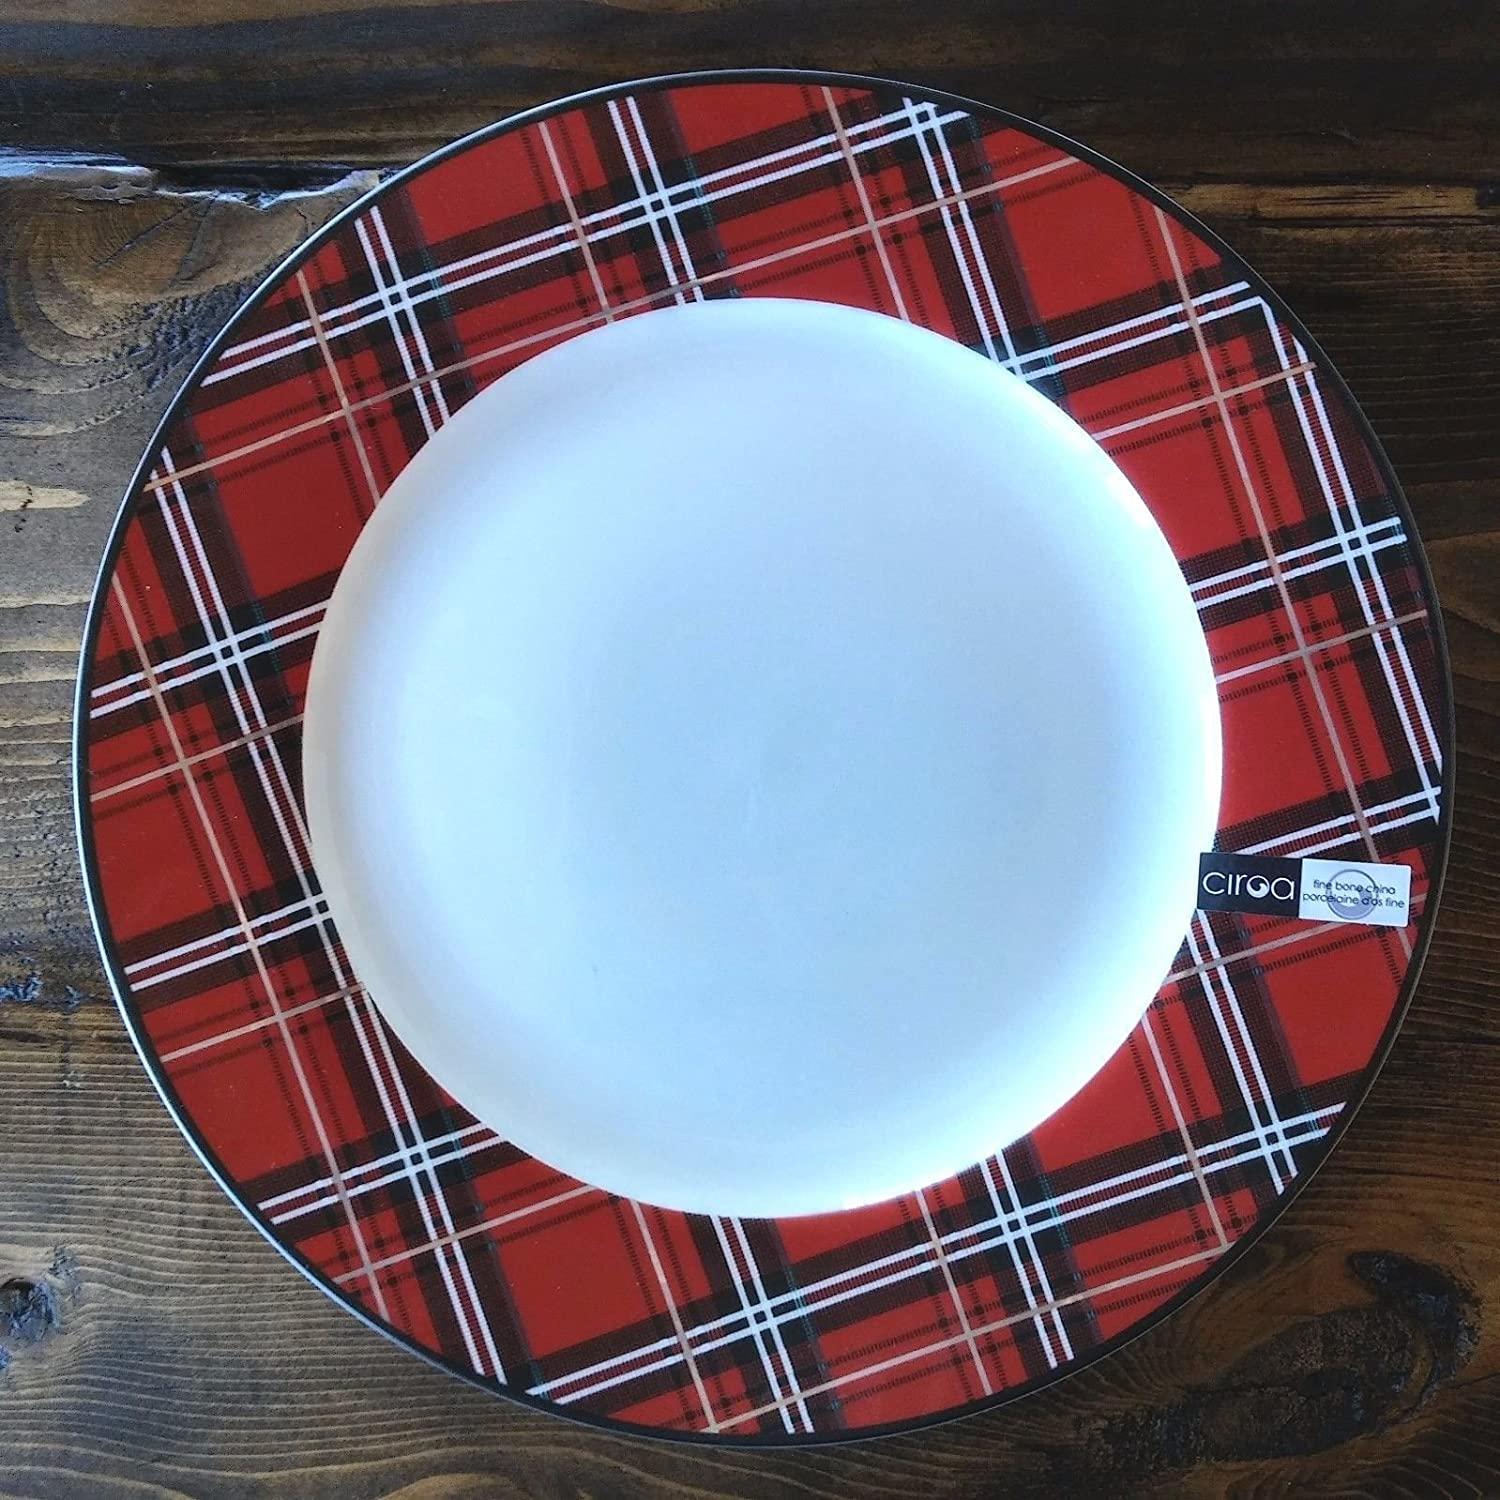 Amazon.com | Ciroa PLAID Red Tartan Christmas Salad / Accent 8  Plates Set of 4 Fine Bone China Porcelain Dinner Plates  sc 1 st  Amazon.com & Amazon.com | Ciroa PLAID Red Tartan Christmas Salad / Accent 8 ...